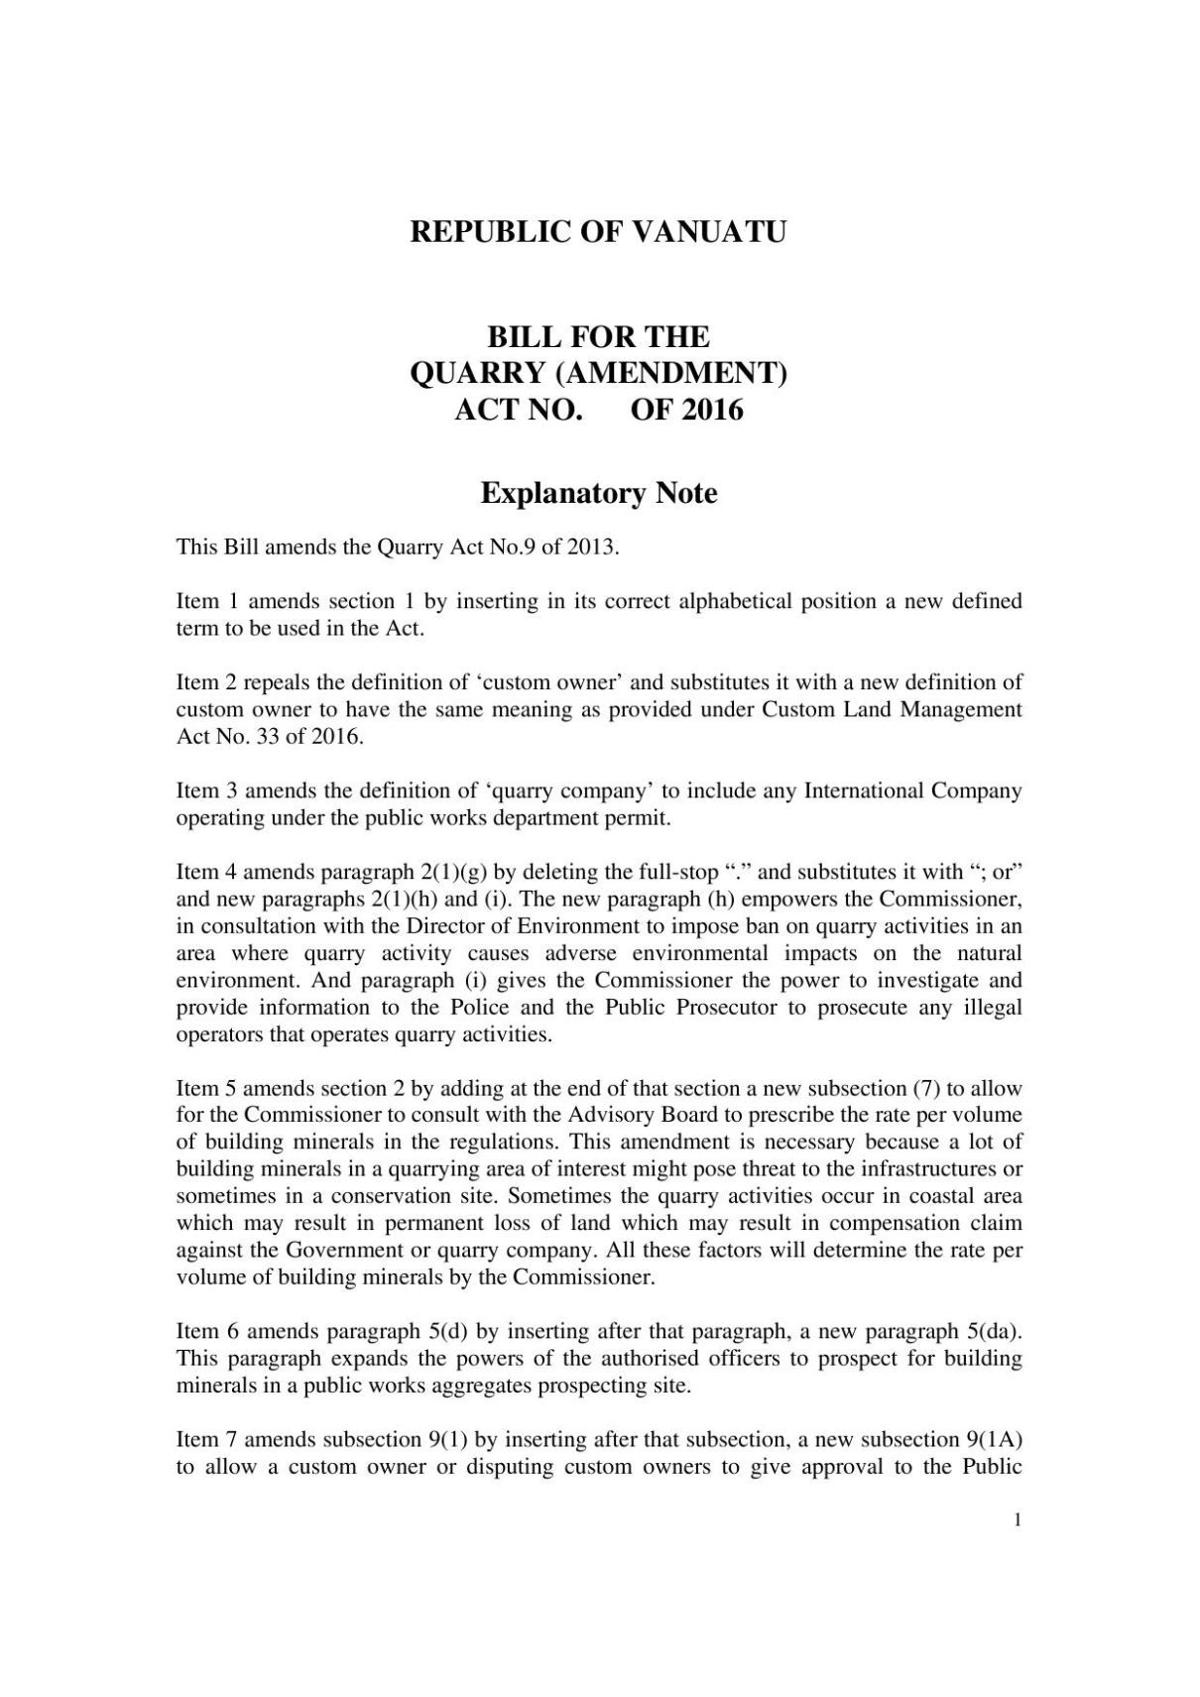 Bill for the Quarry (Am) Act No. of 2016.pdf